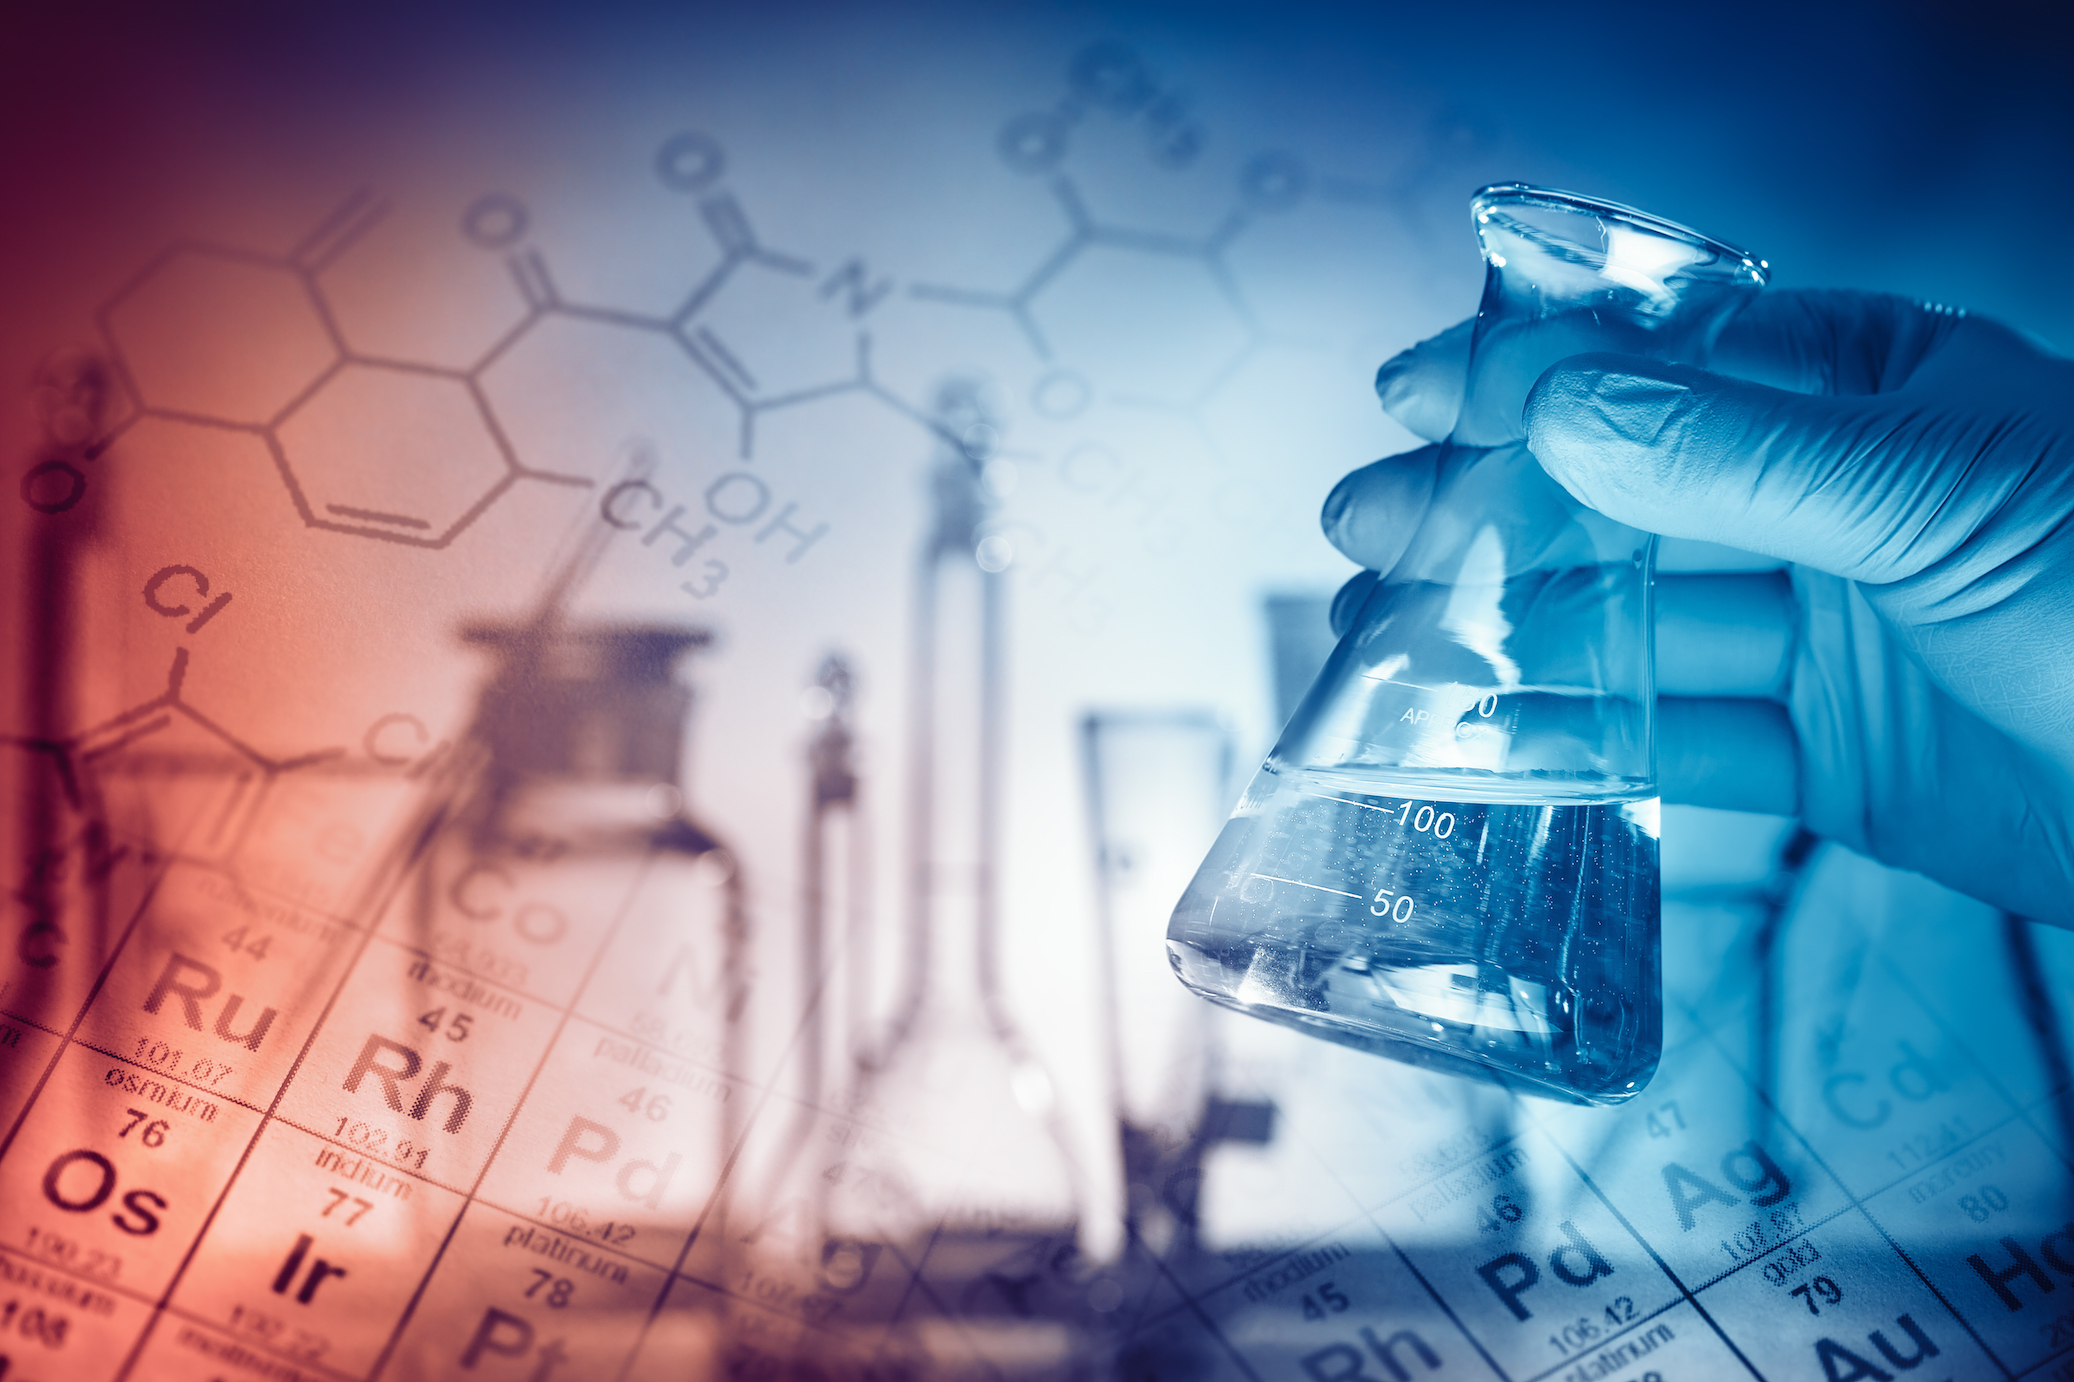 The United States has led the world in scientific research for a century, but experts are warning that the nation is losing the upper hand in this field.